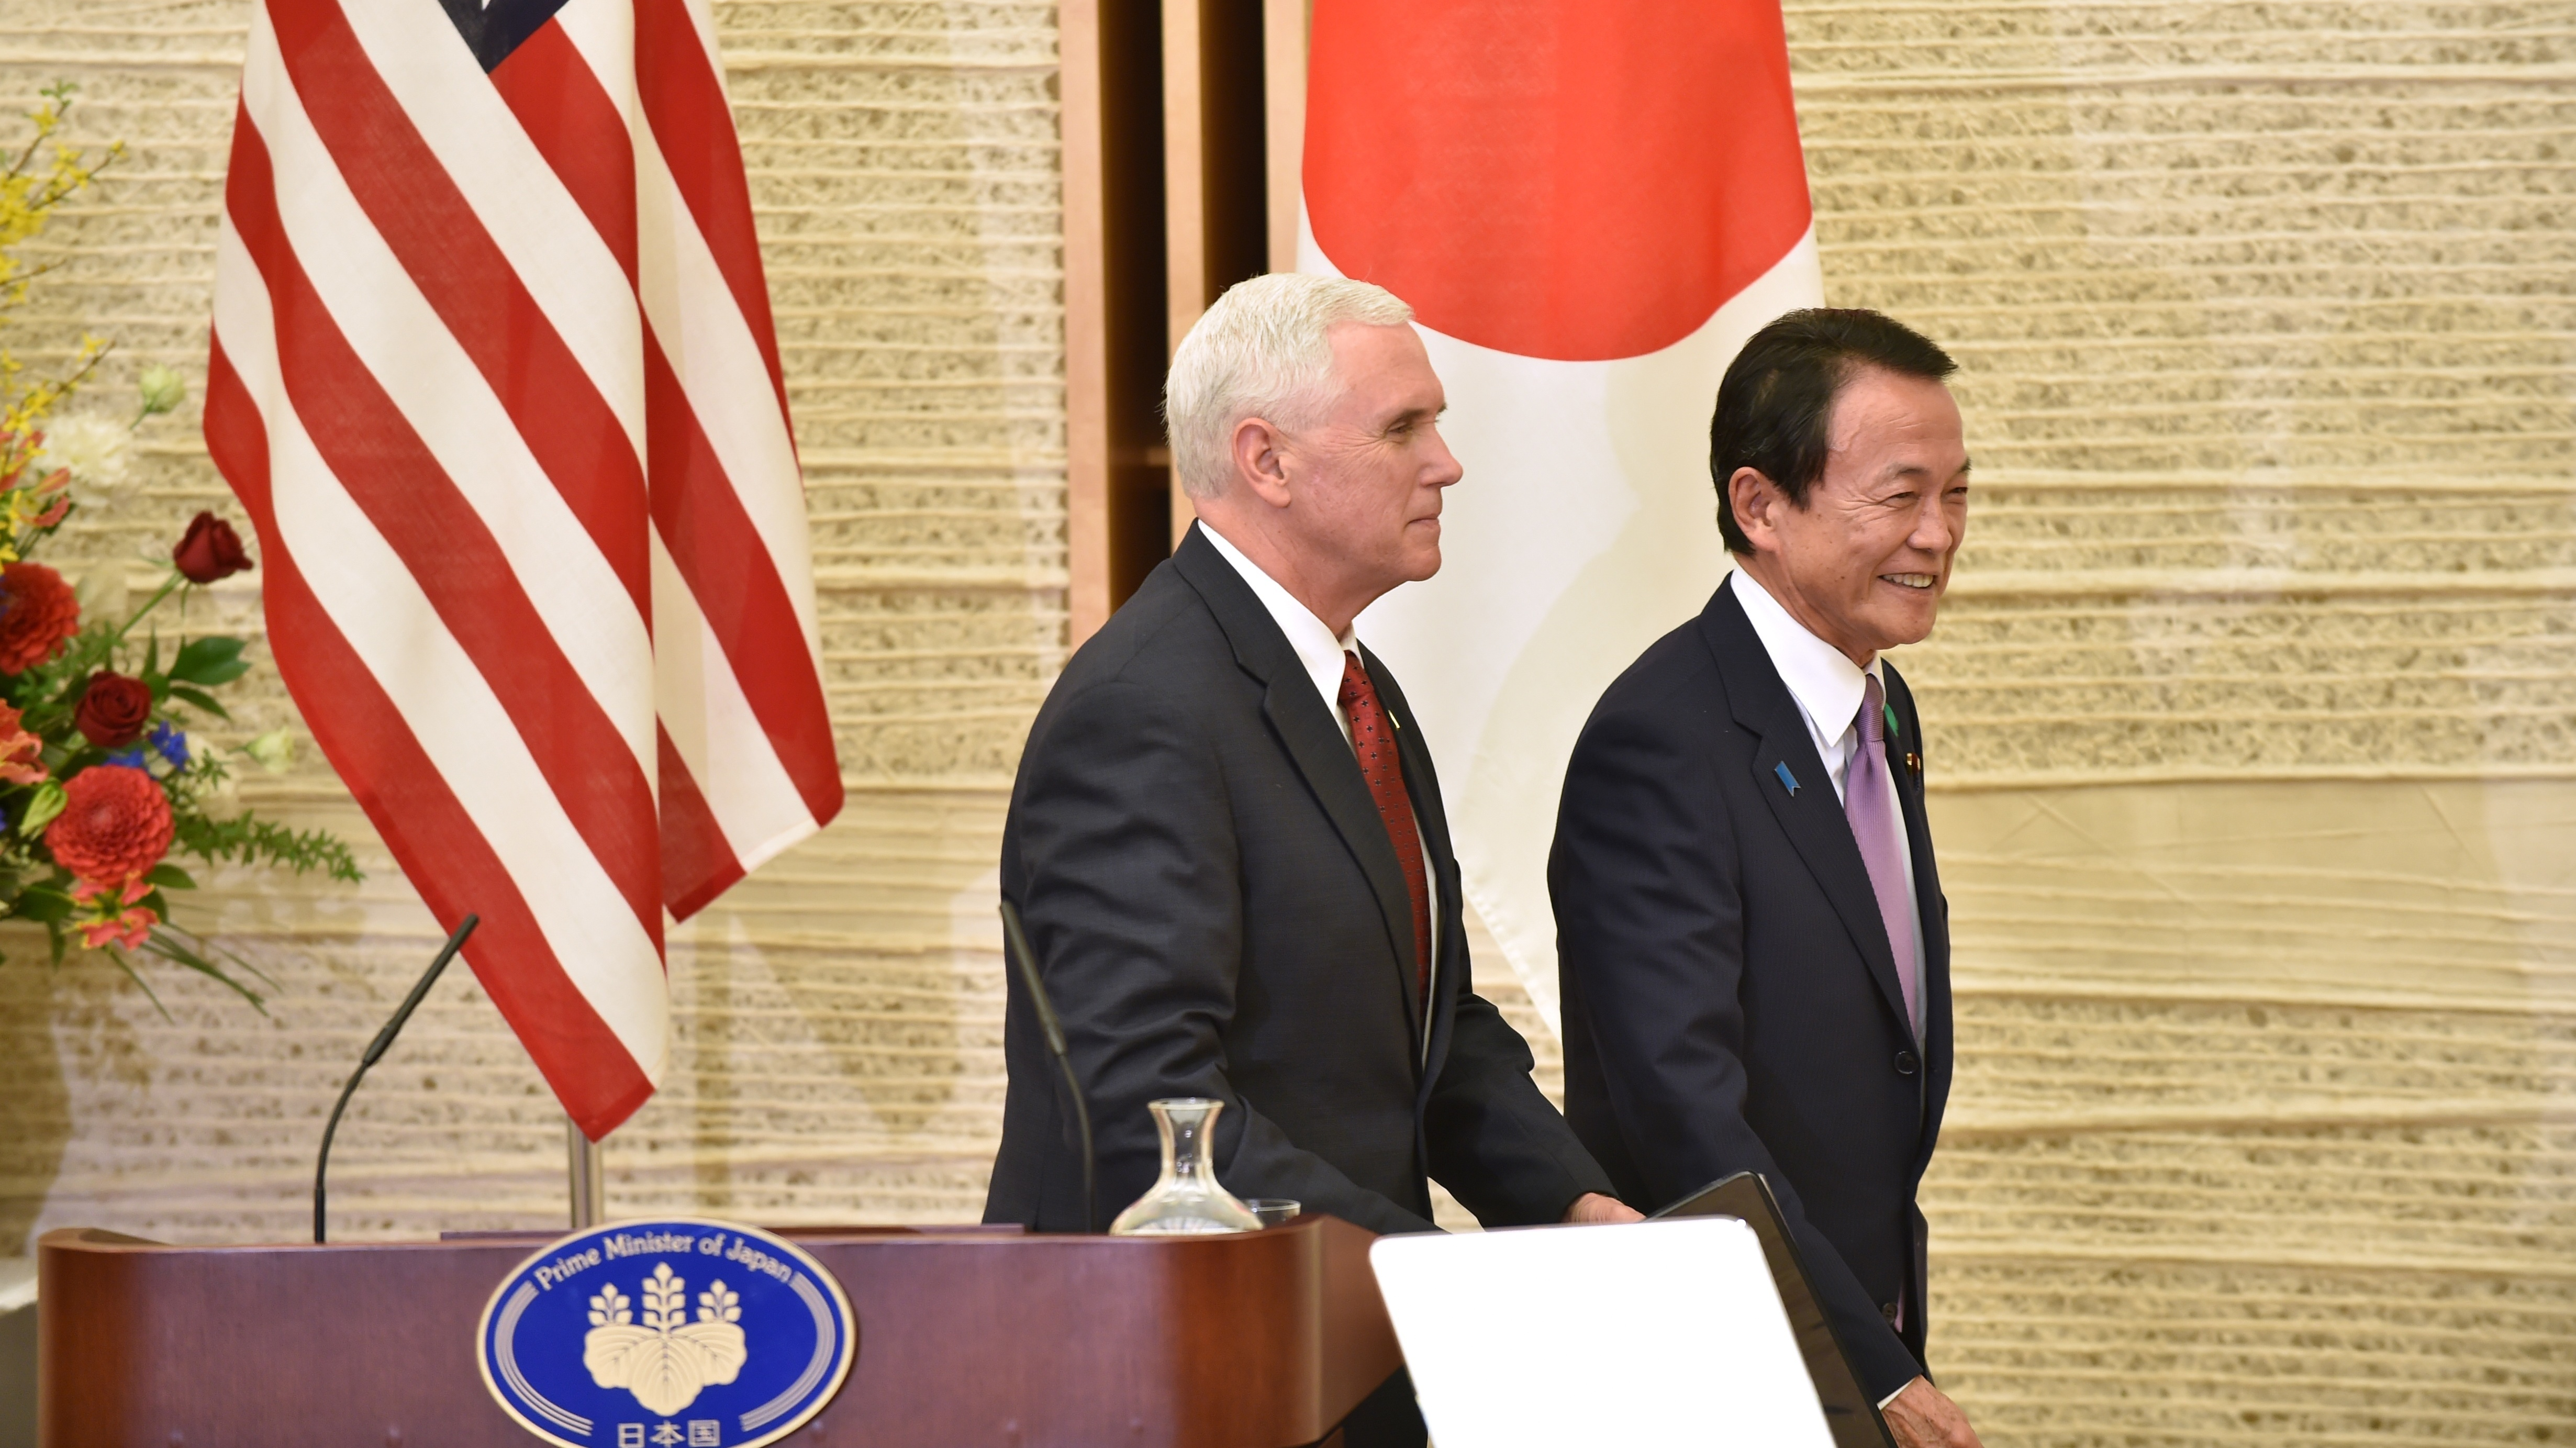 Vice President Pence and Japanese Deputy Prime Minister and Minister of Finance Taro Aso leave the prime minister